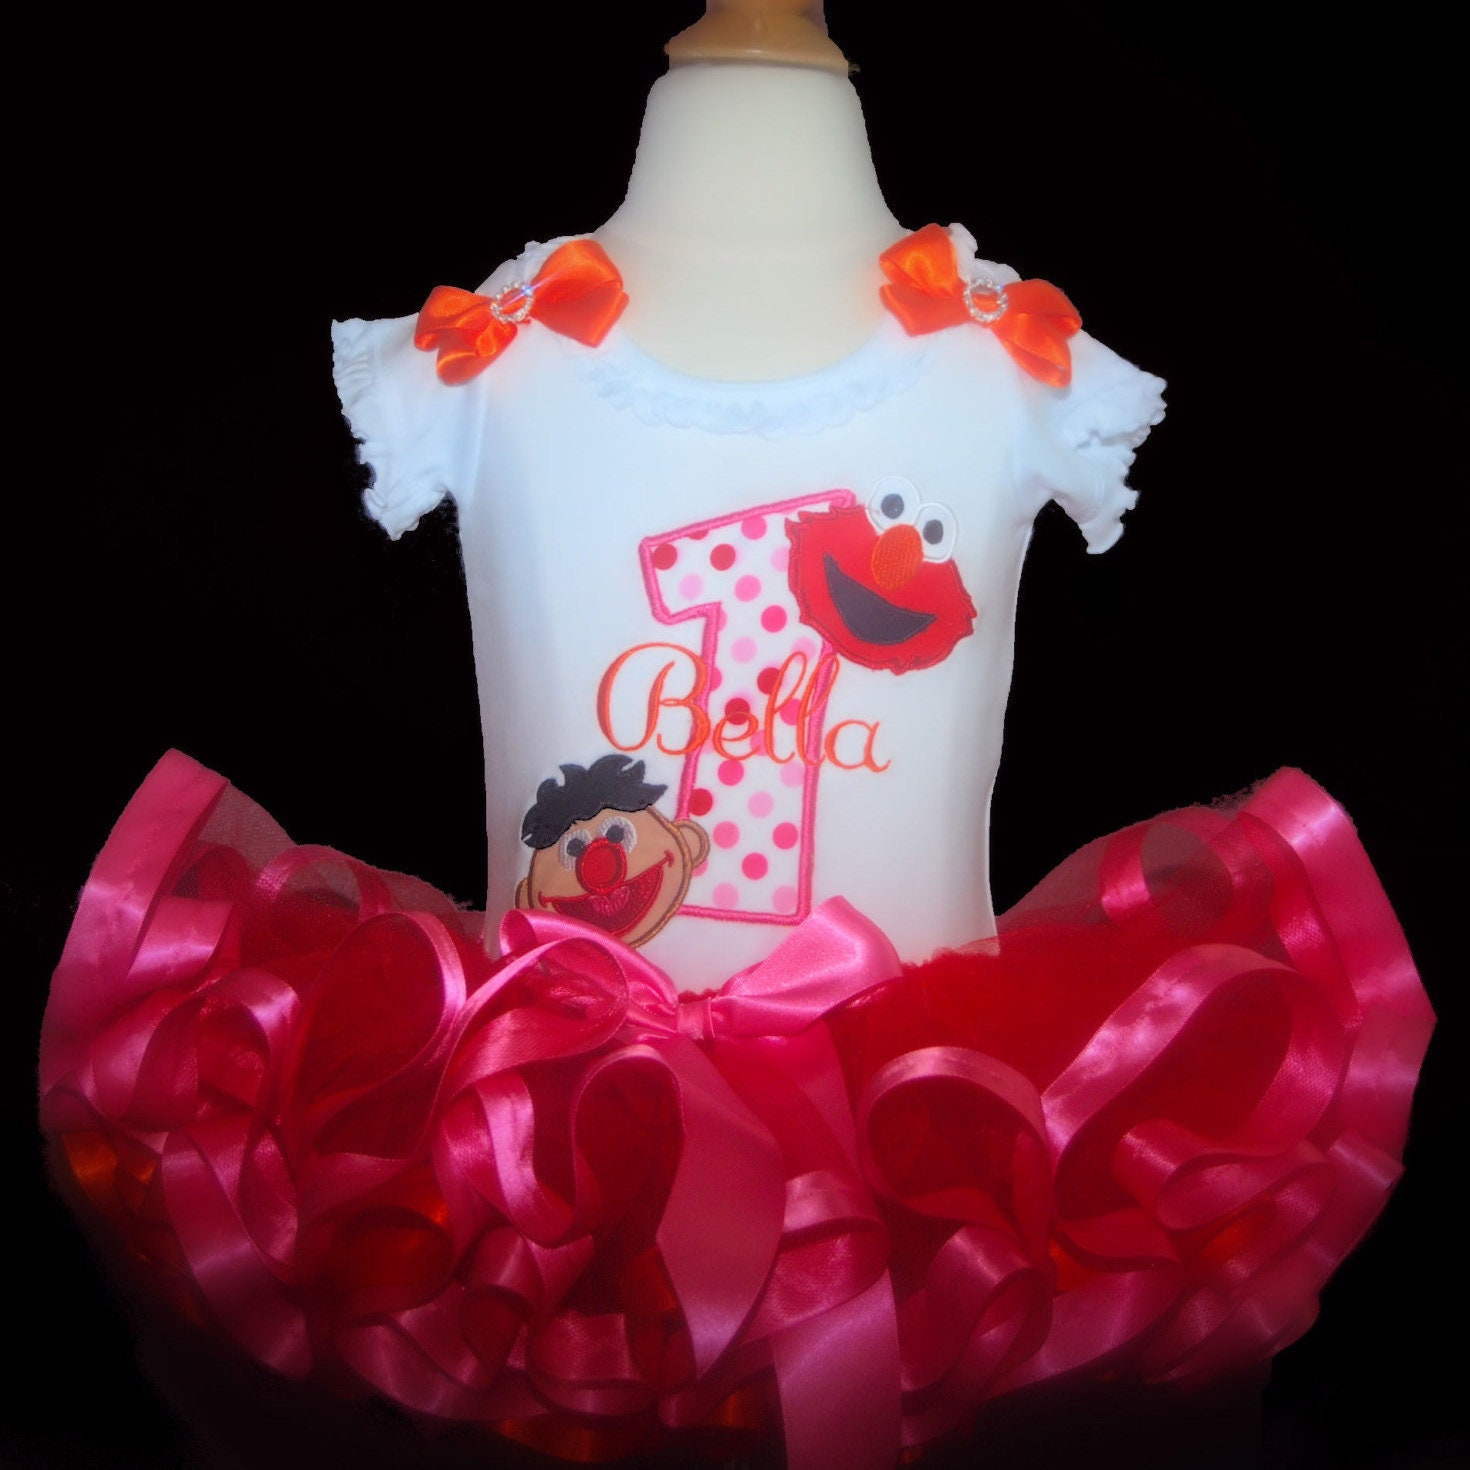 Elmo birthday outfit girl 1st birthday tutu outfit first birthday outfit girl toddler tutu baby 1st birthday personalized tutu dress elmo